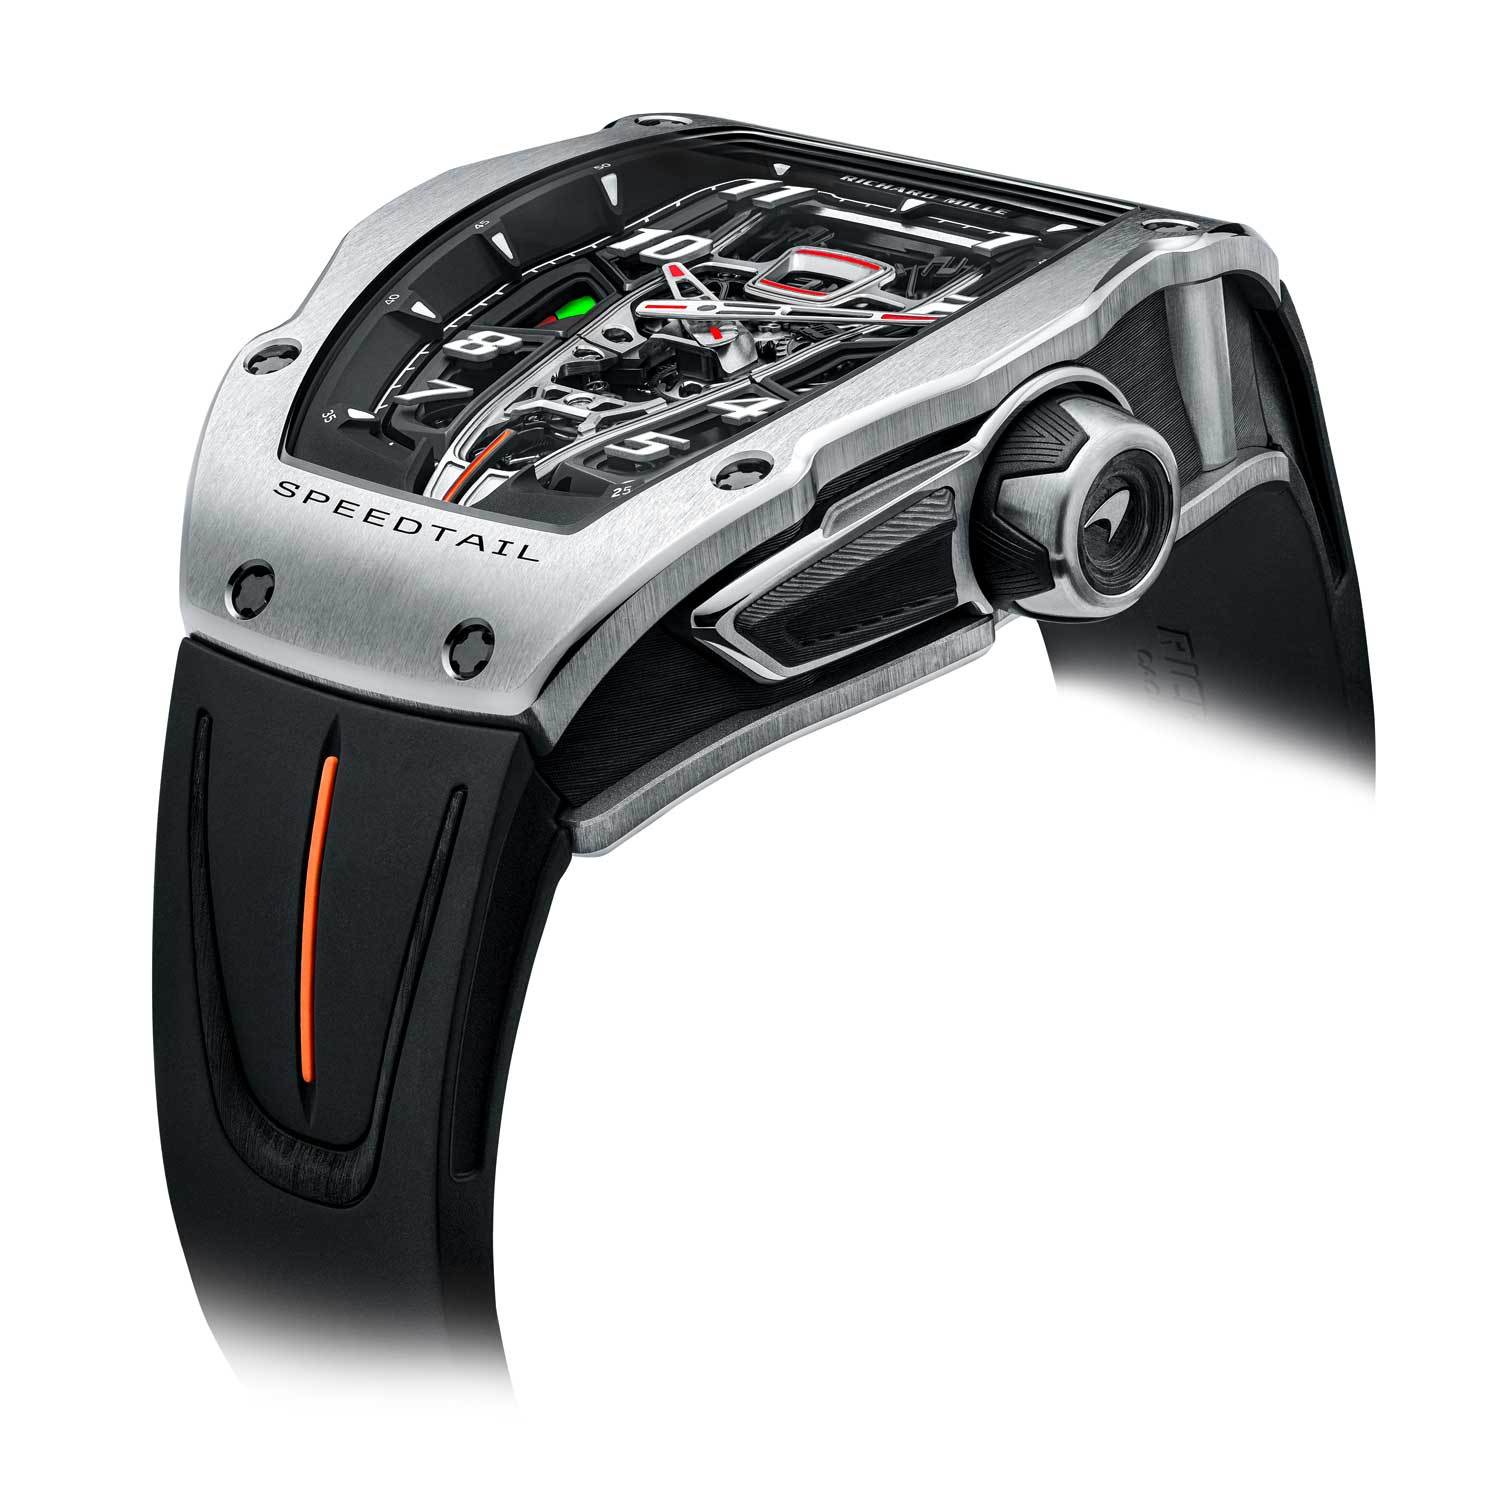 The watch entails one of the highest levels of finishing ever executed at Richard Mille